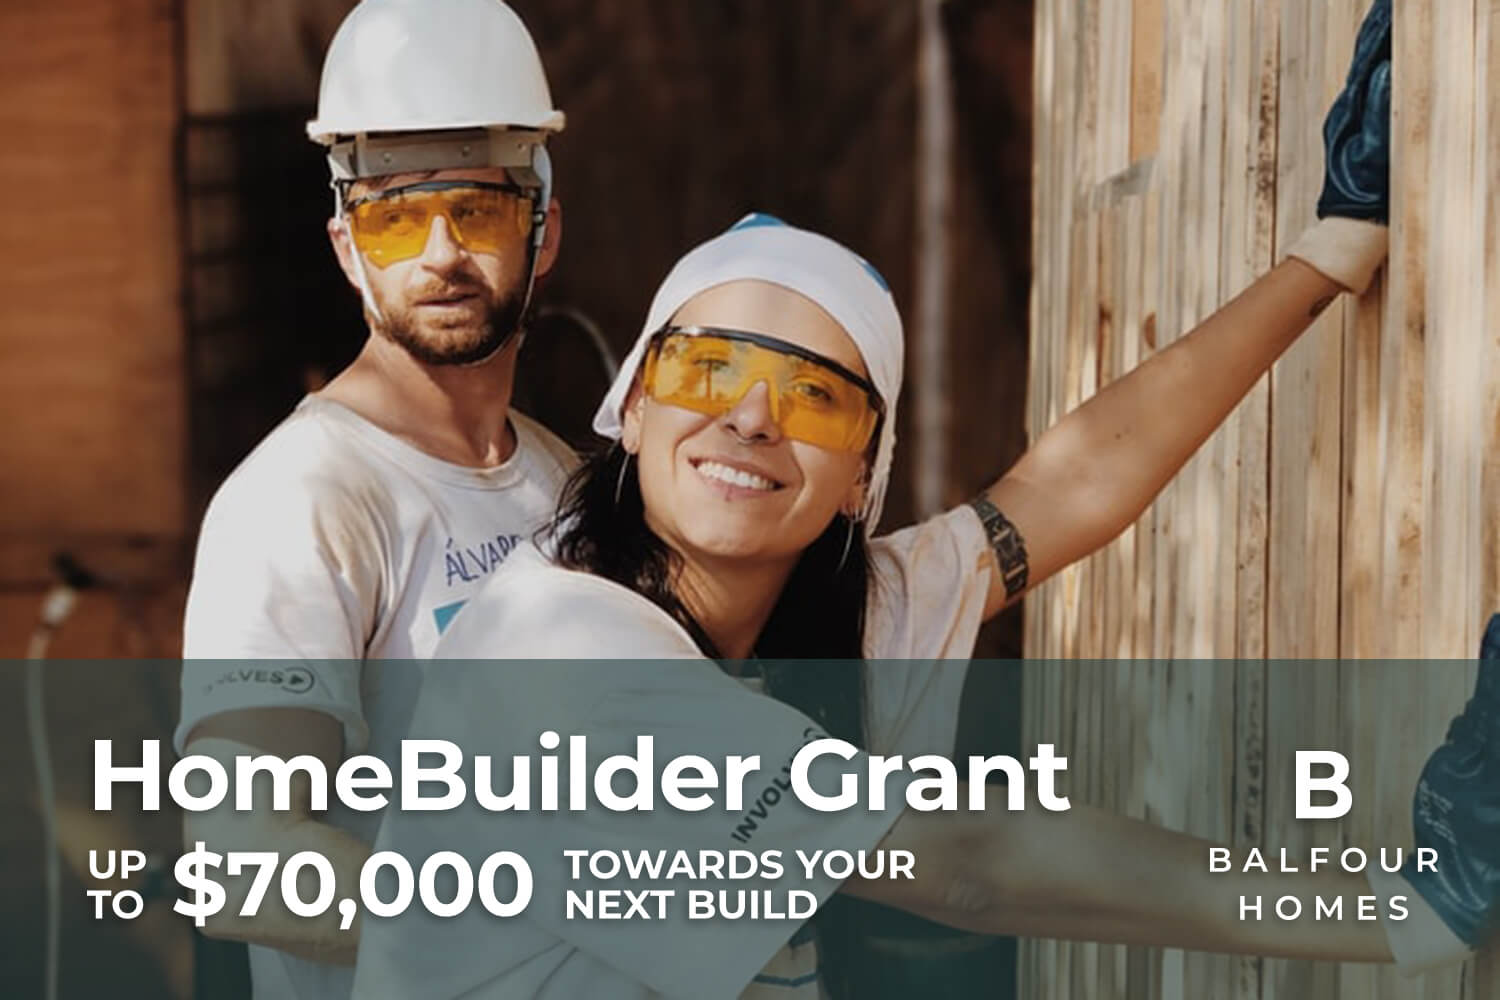 Balfour Homes - Our Guide to the Details of the HomeBuilder Grant